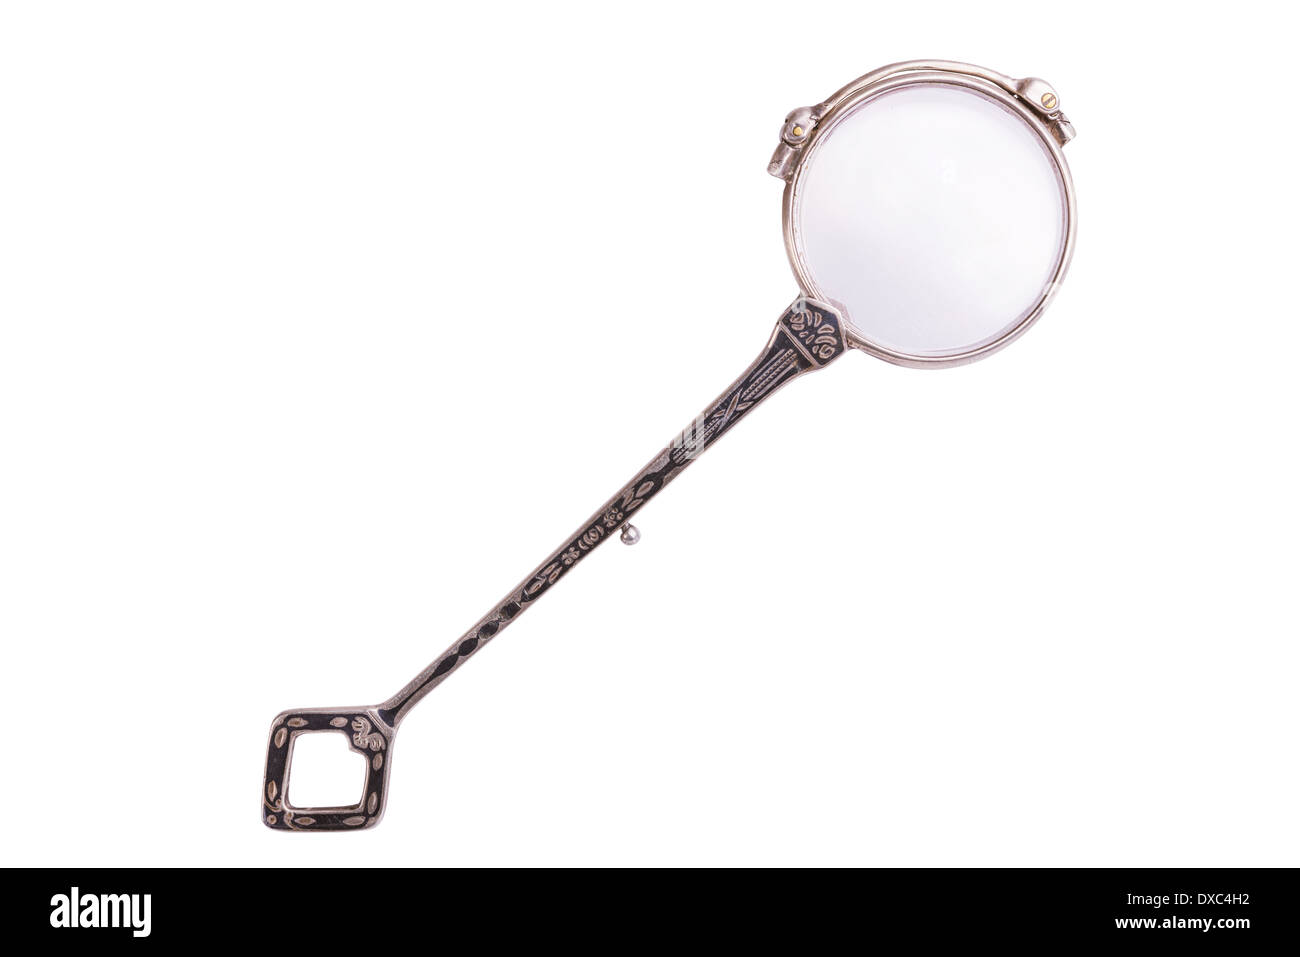 Folded rarity vintage lorgnette isolated on white background - Stock Image